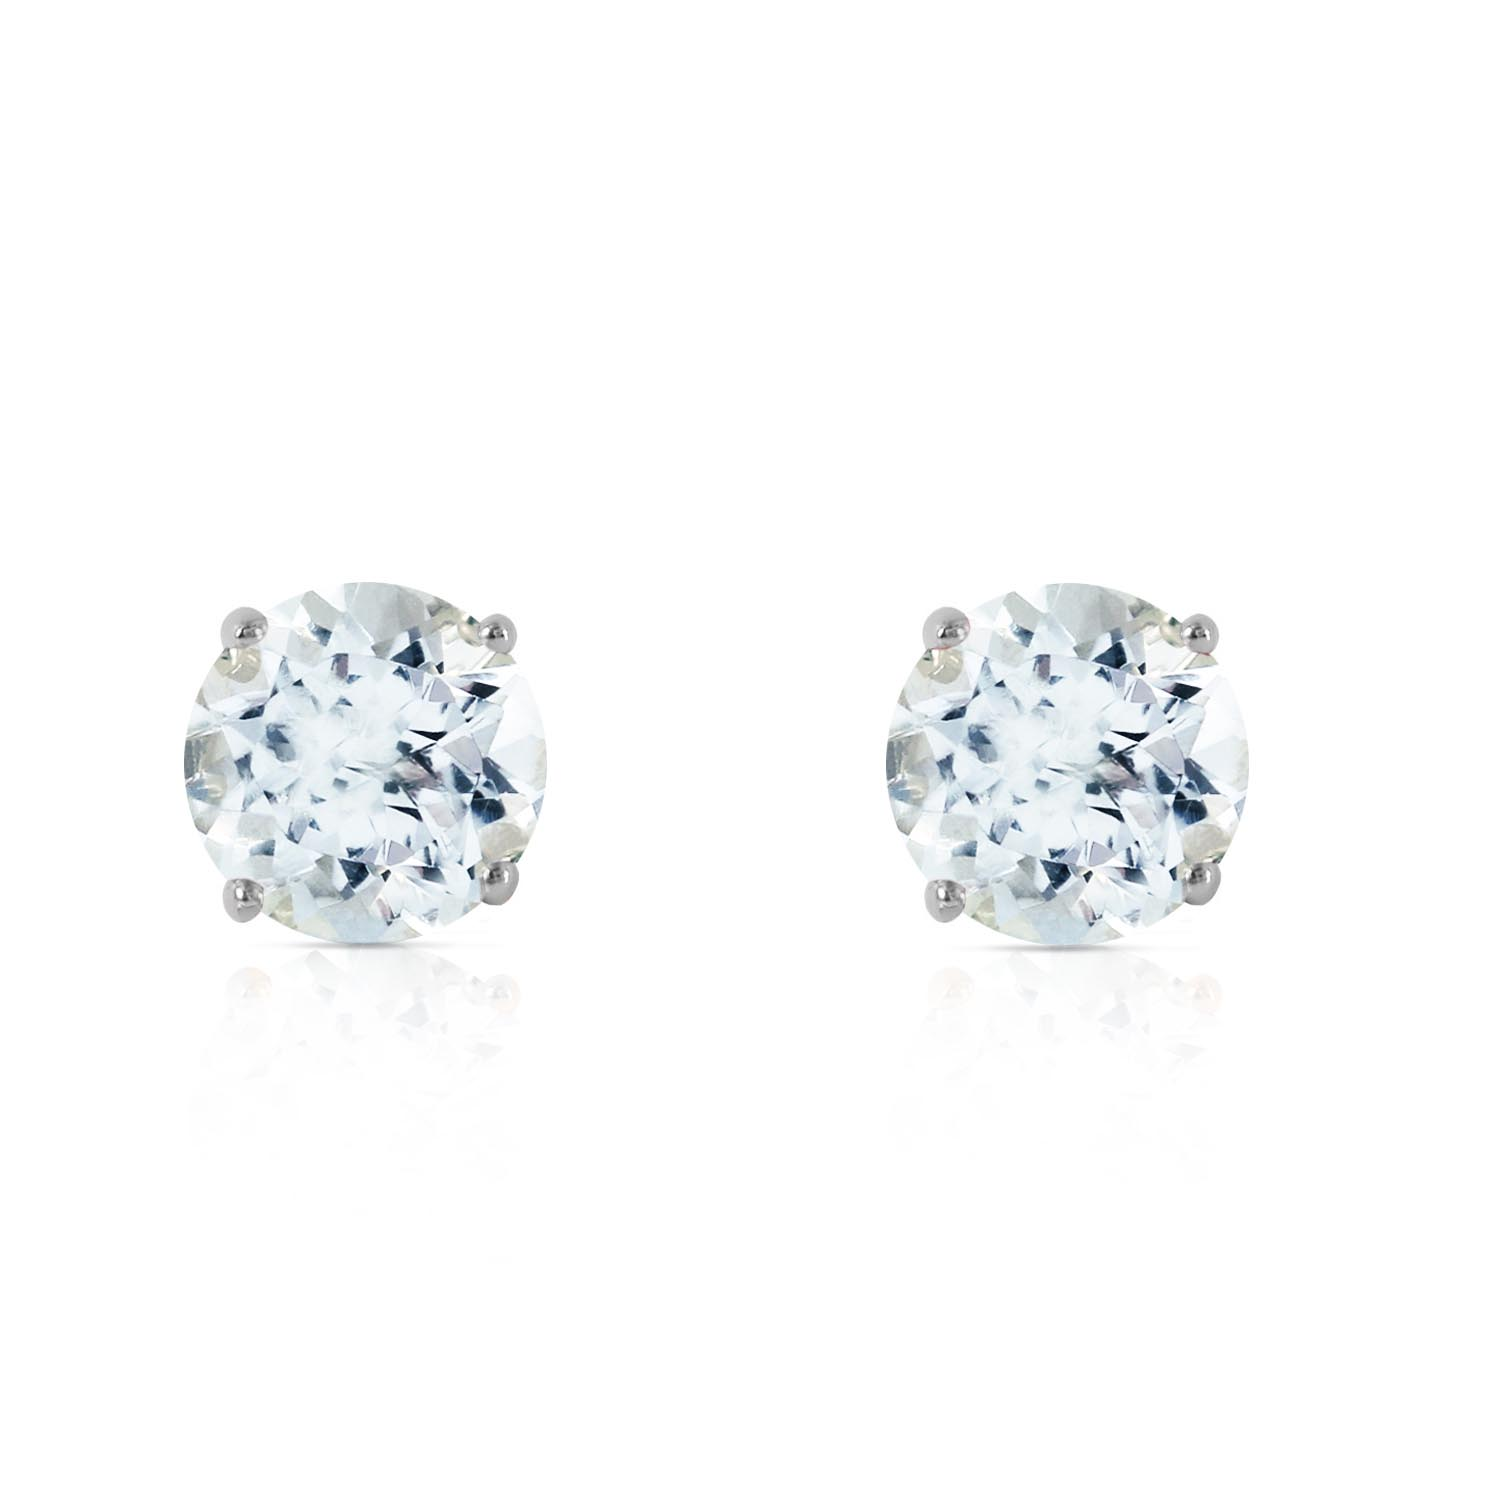 Aquamarine Stud Earrings 0.95ctw in 9ct White Gold